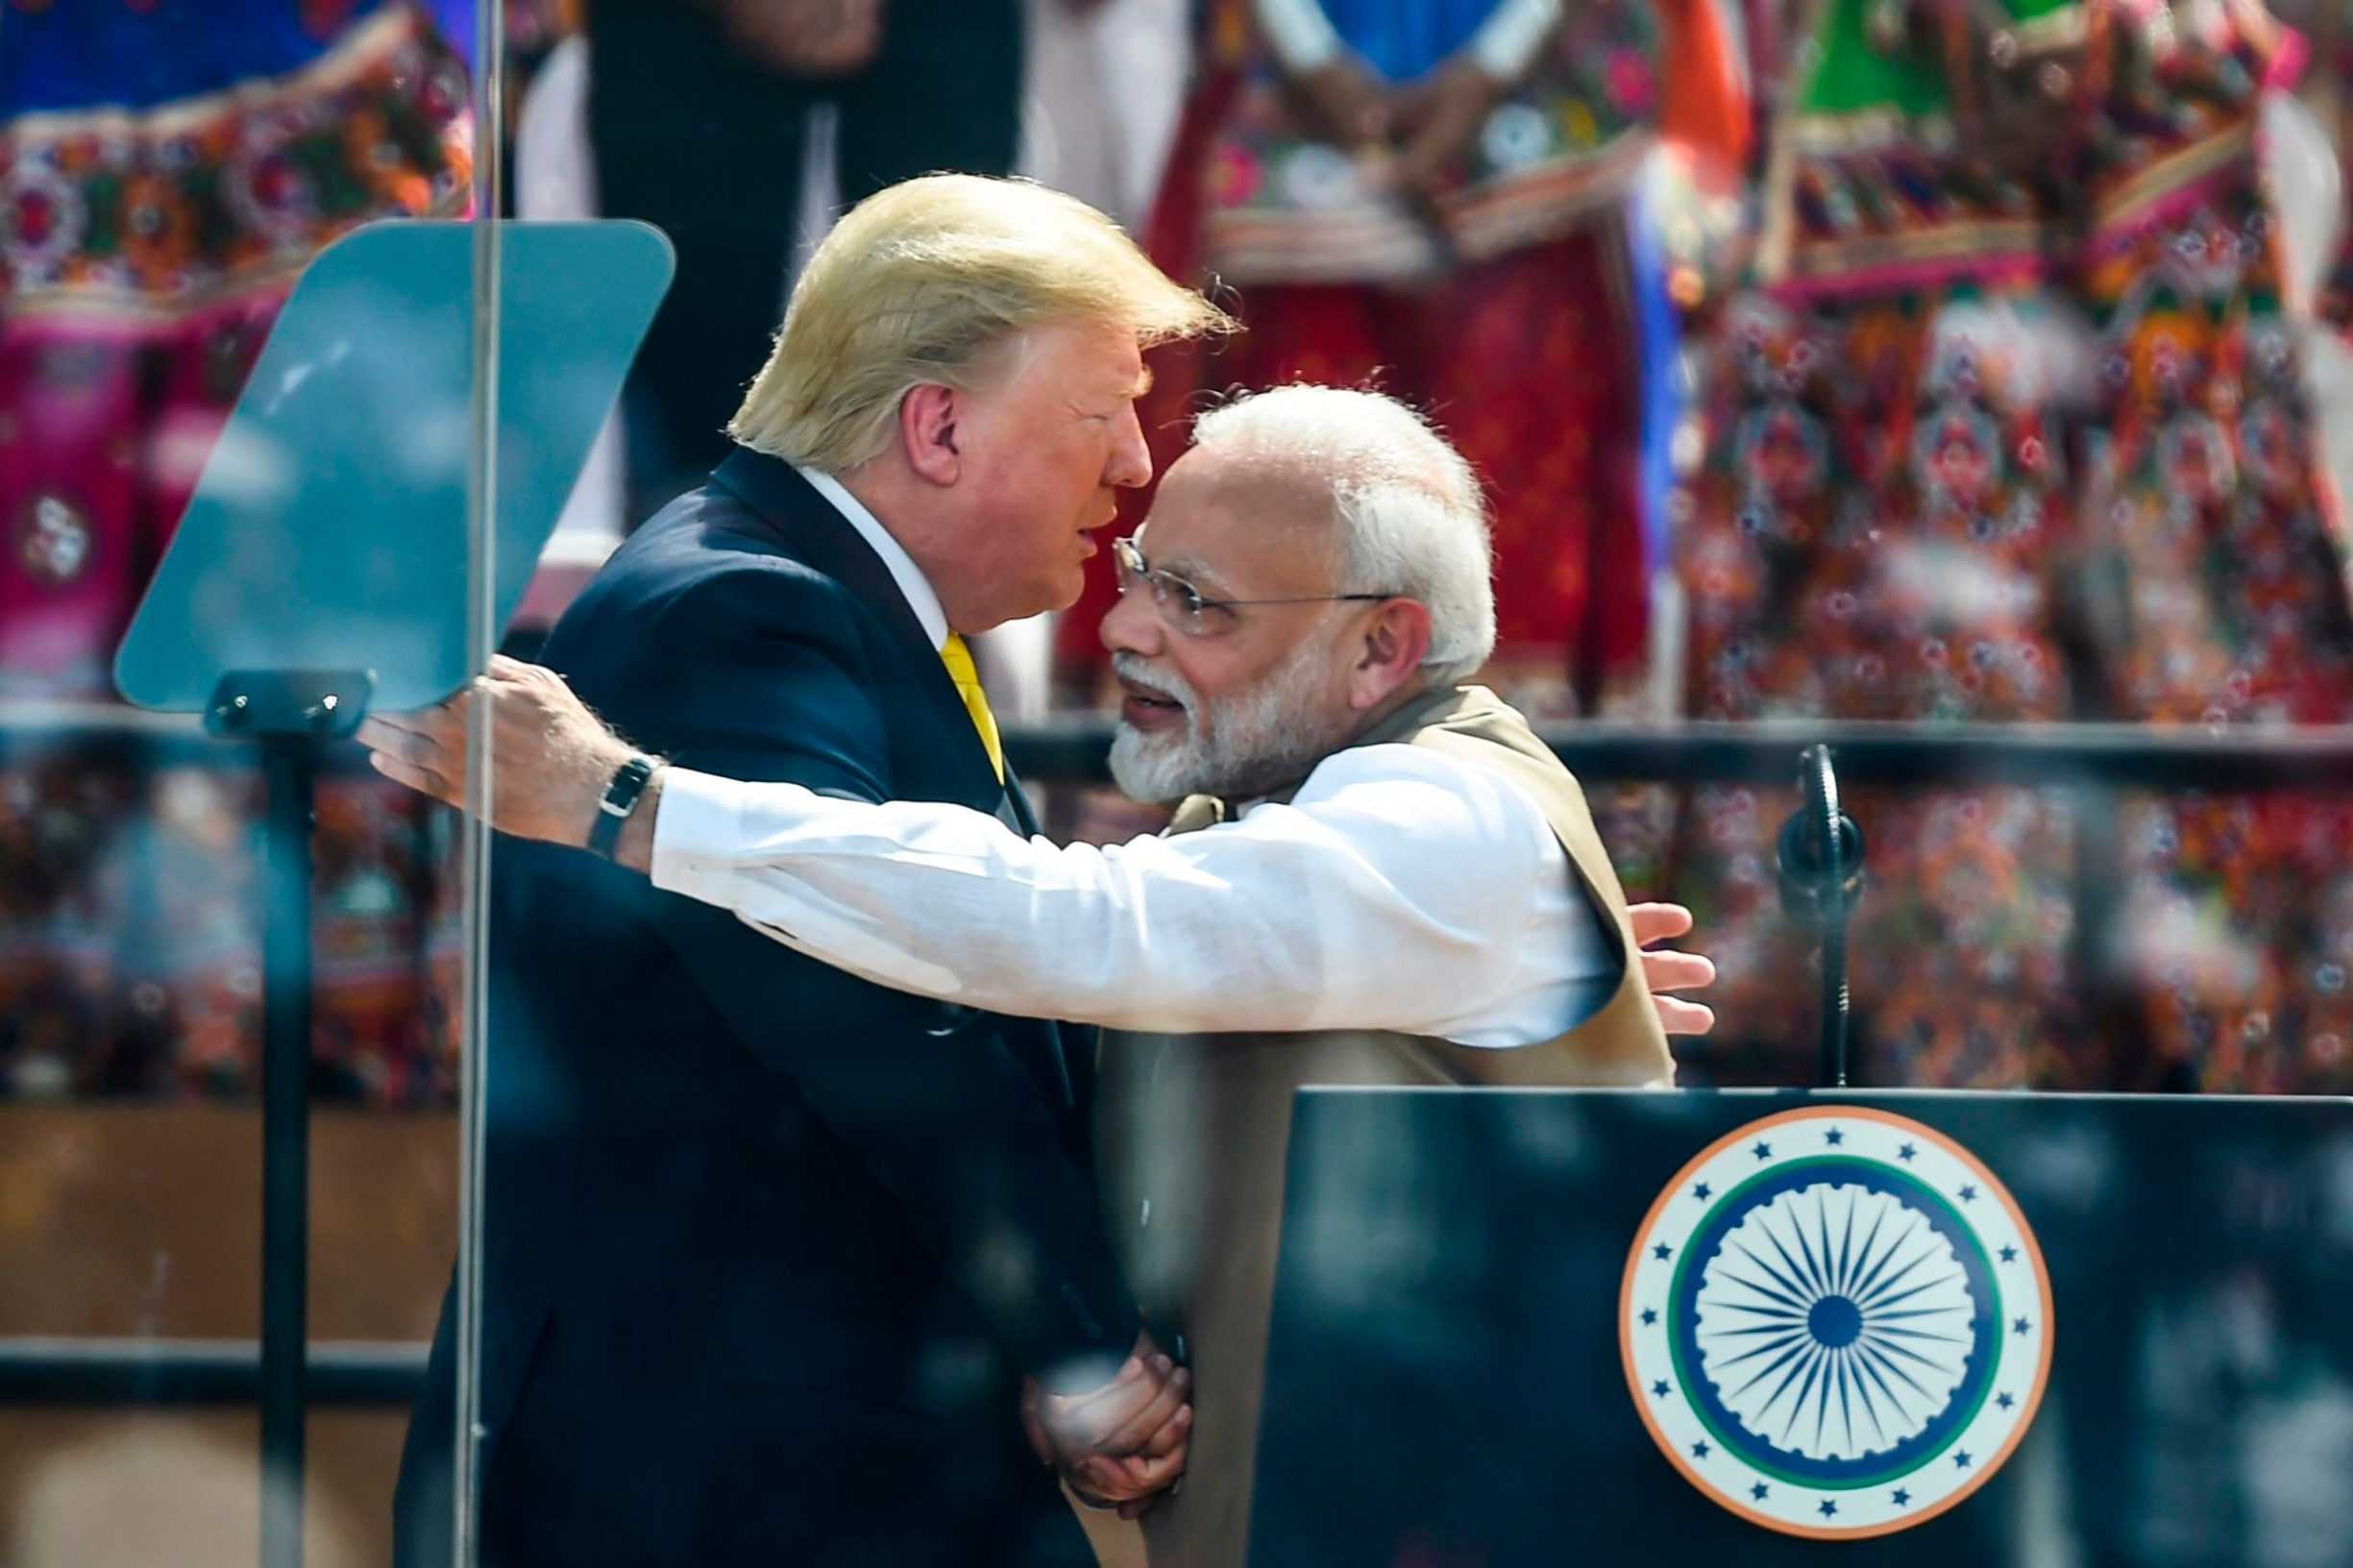 US President Donald Trump shakes hands with India's Prime Minister Narendra Modi during 'Namaste Trump' rally at Sardar Patel Stadium in Motera, on the outskirts of Ahmedabad, on February 24, 2020. (Photo by Money SHARMA / AFP)